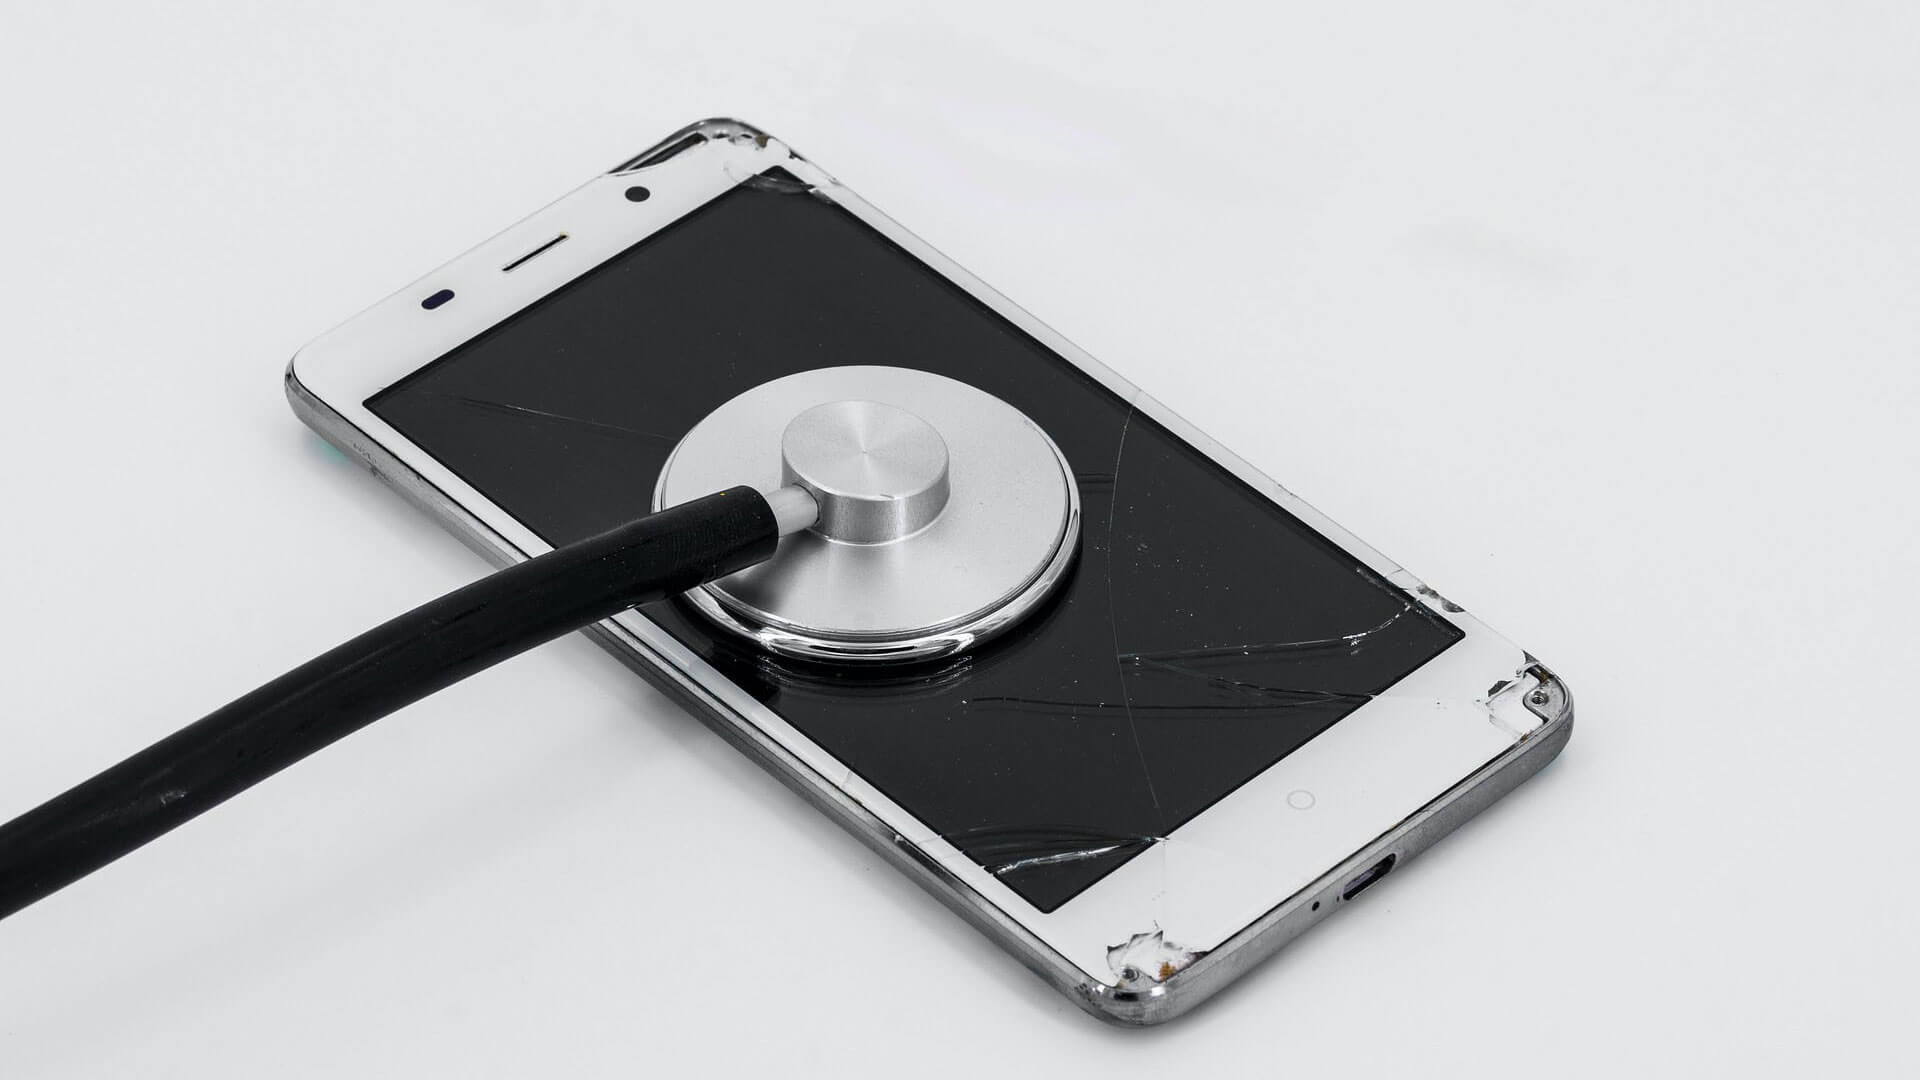 A smartphone with a cracked screen, stethoscope laying on top of phone.